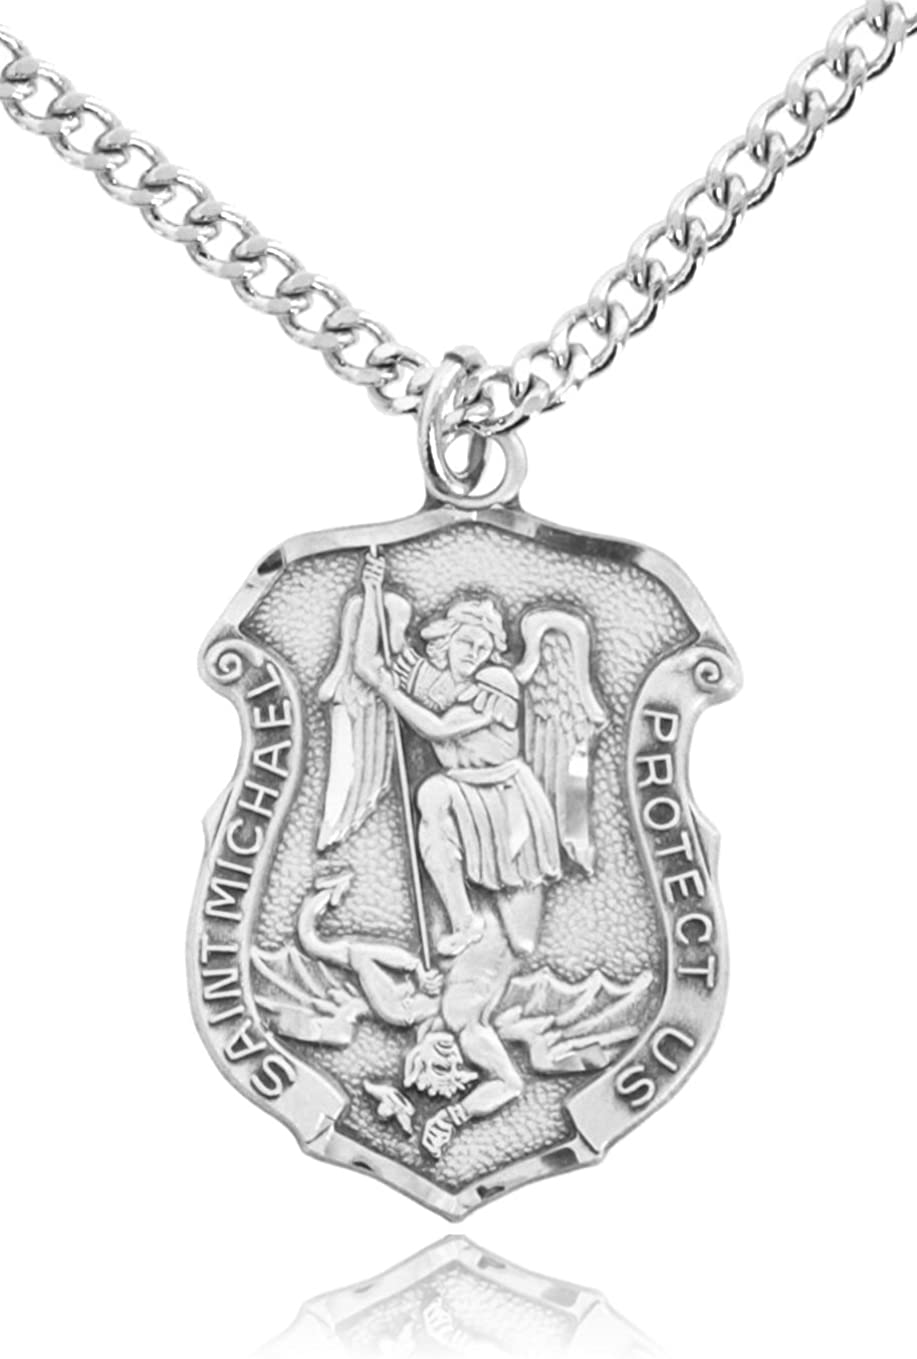 Heartland Men's Saint Michael Sterling Silver Police Shield Medal + USA Made + Chain Choice